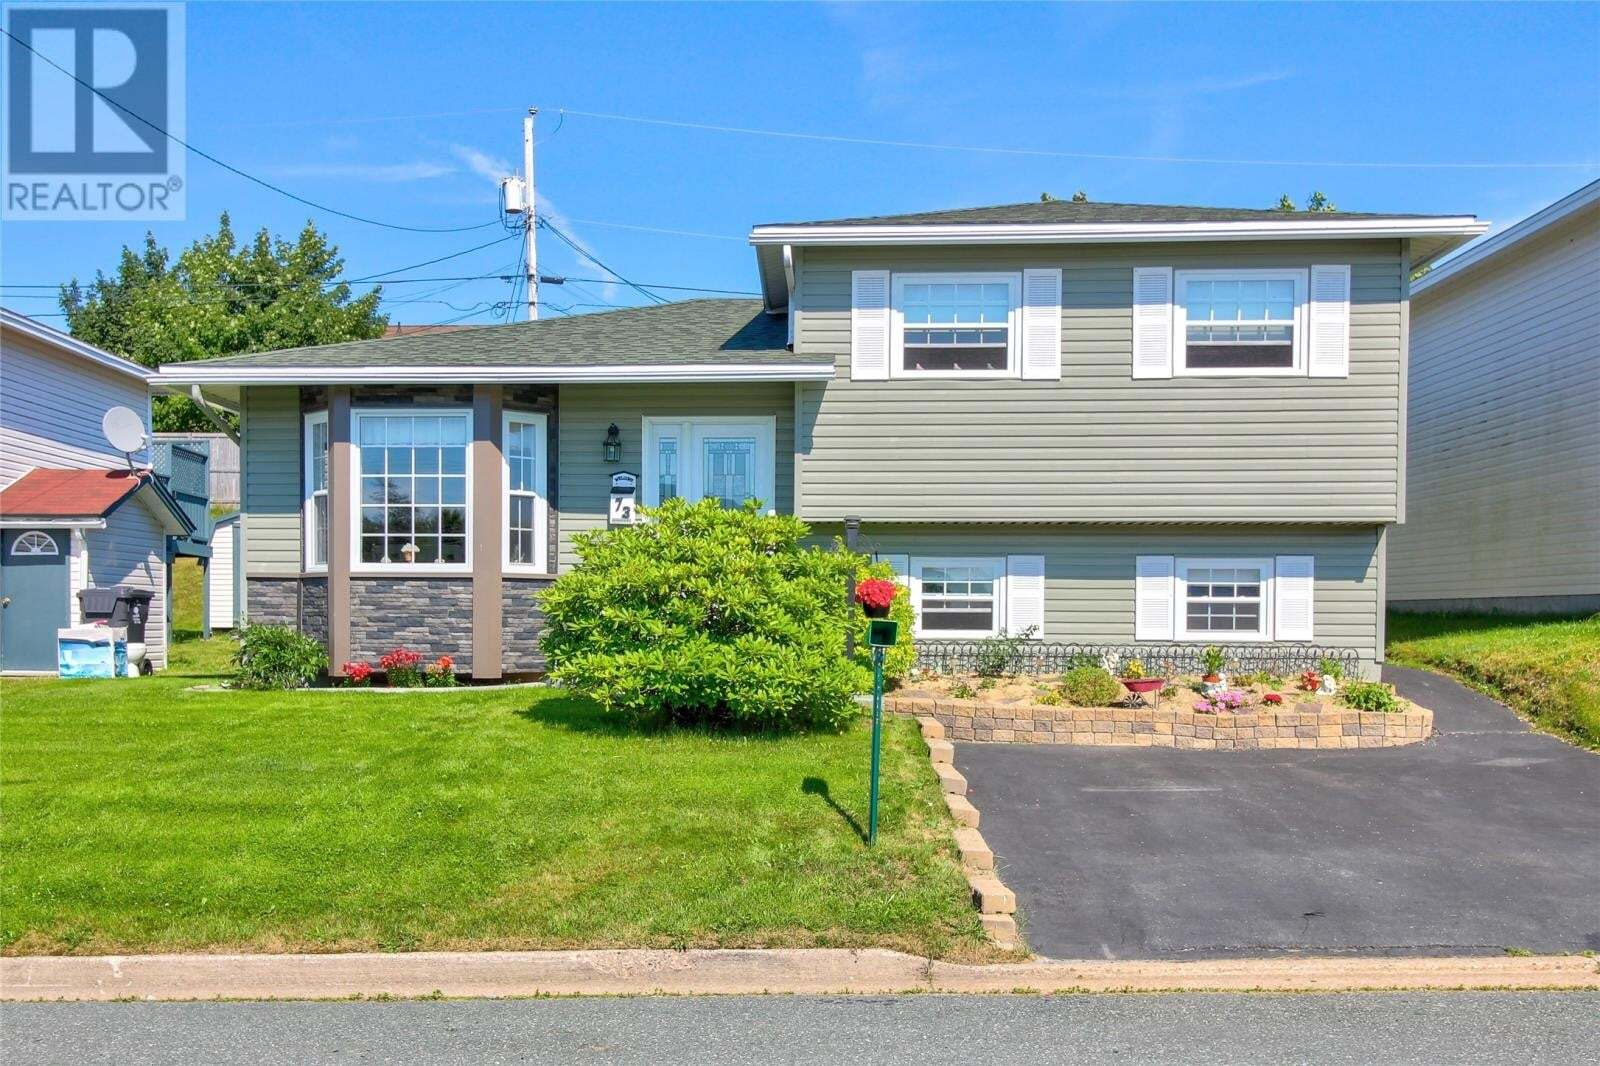 House for sale at 73 Sparrow Dr Conception Bay South Newfoundland - MLS: 1218534